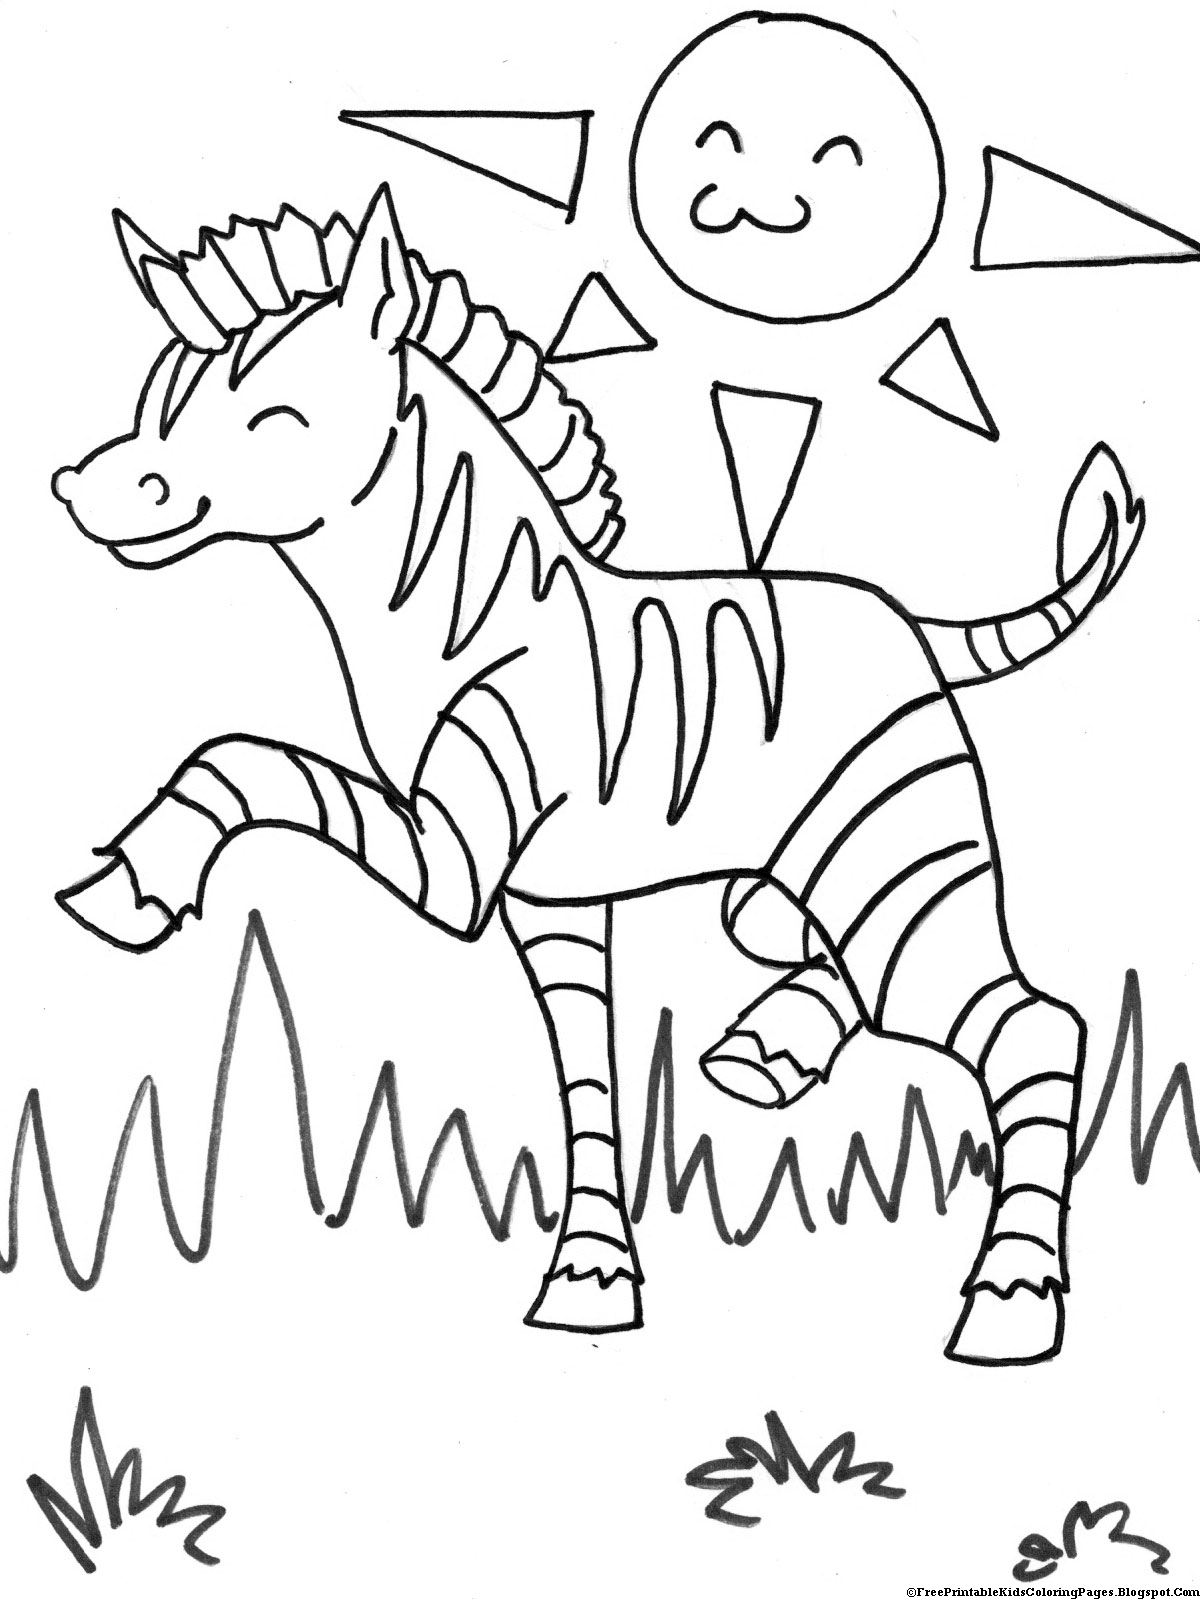 free zoo coloring pages - photo#23